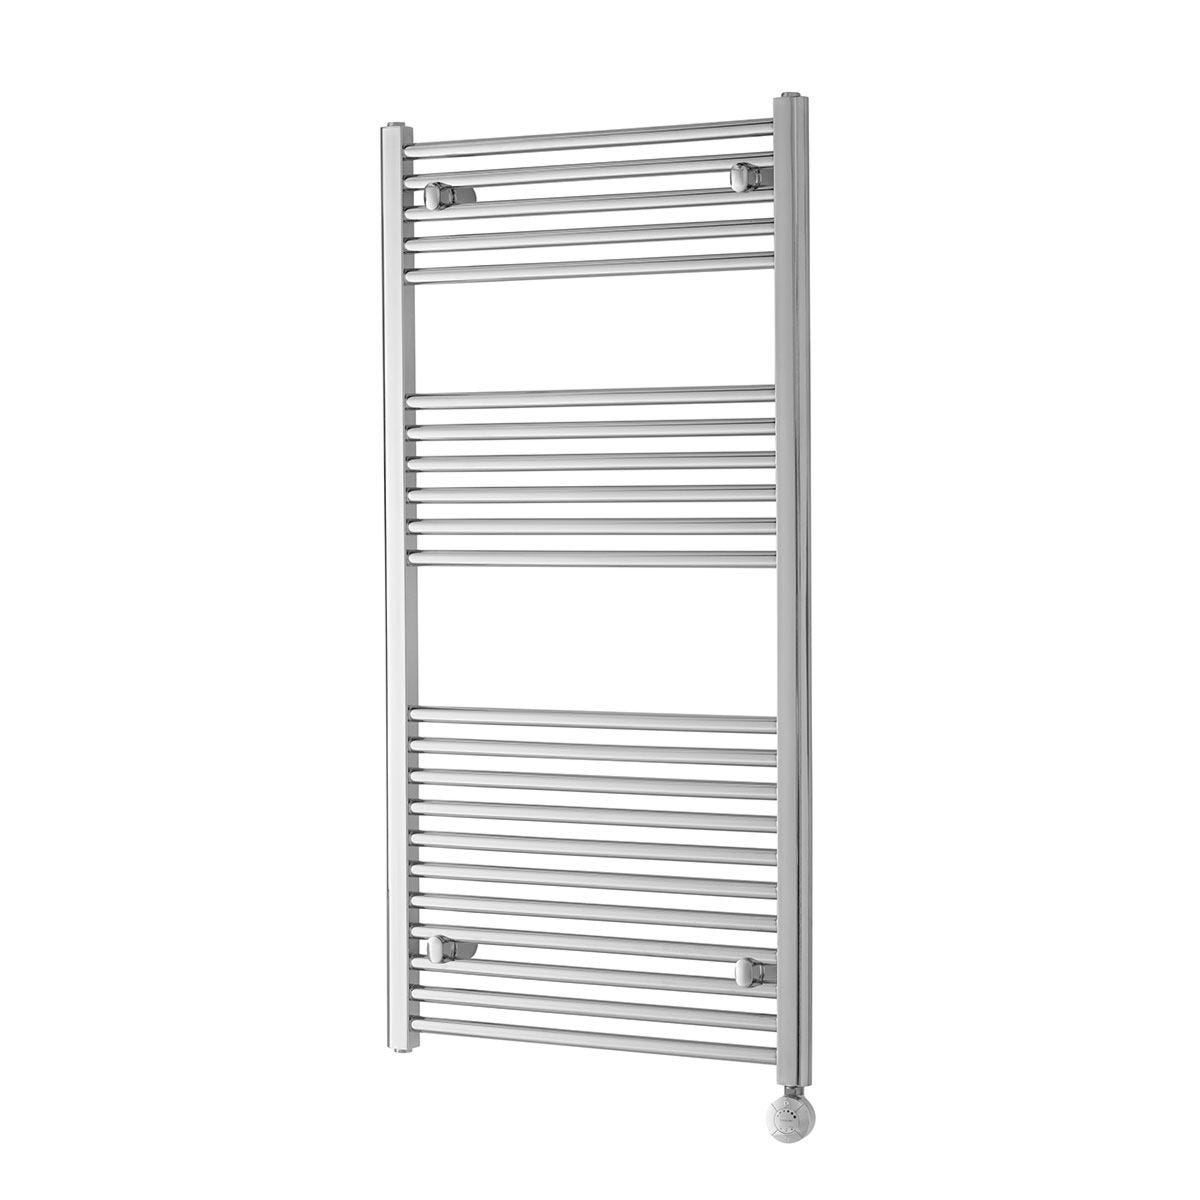 Heating Style Richmond 300w Electric Towel Warmer 691mm x 450mm - Chrome